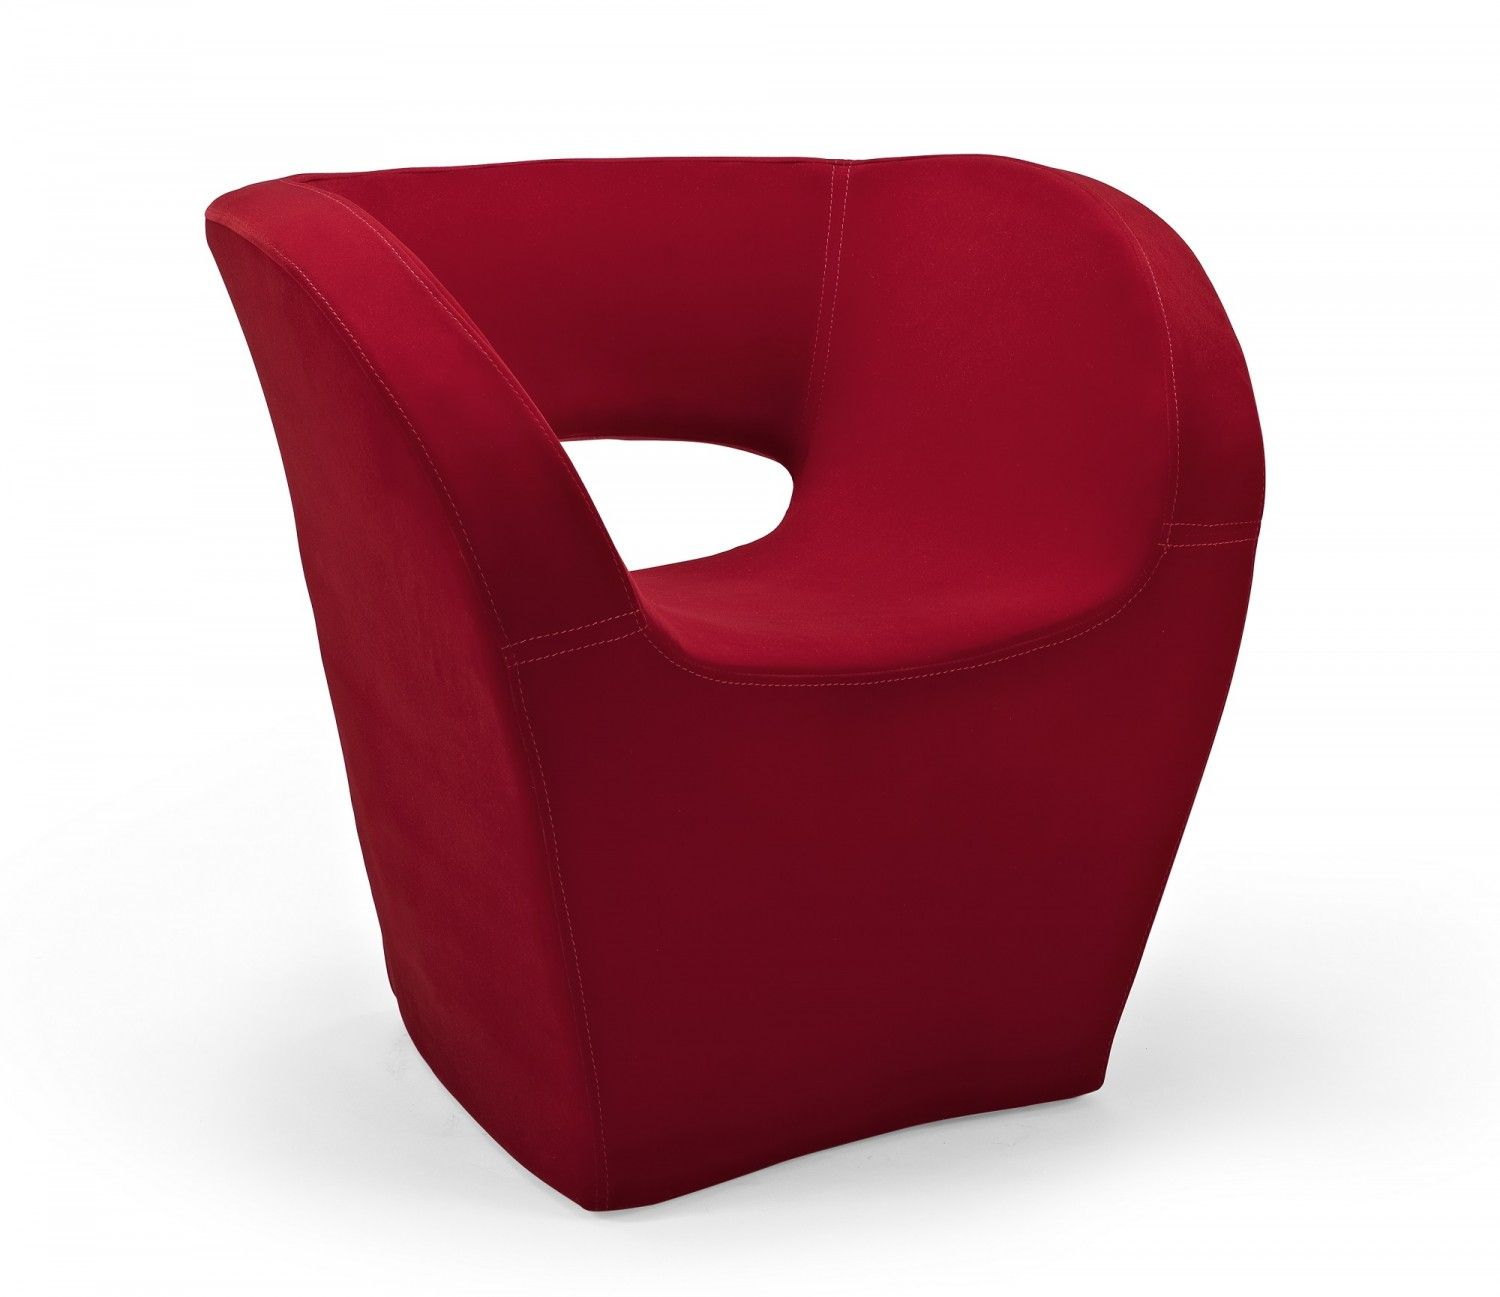 Pandora Accent Chair For Scarlet Red Chairs At Creative Furniture